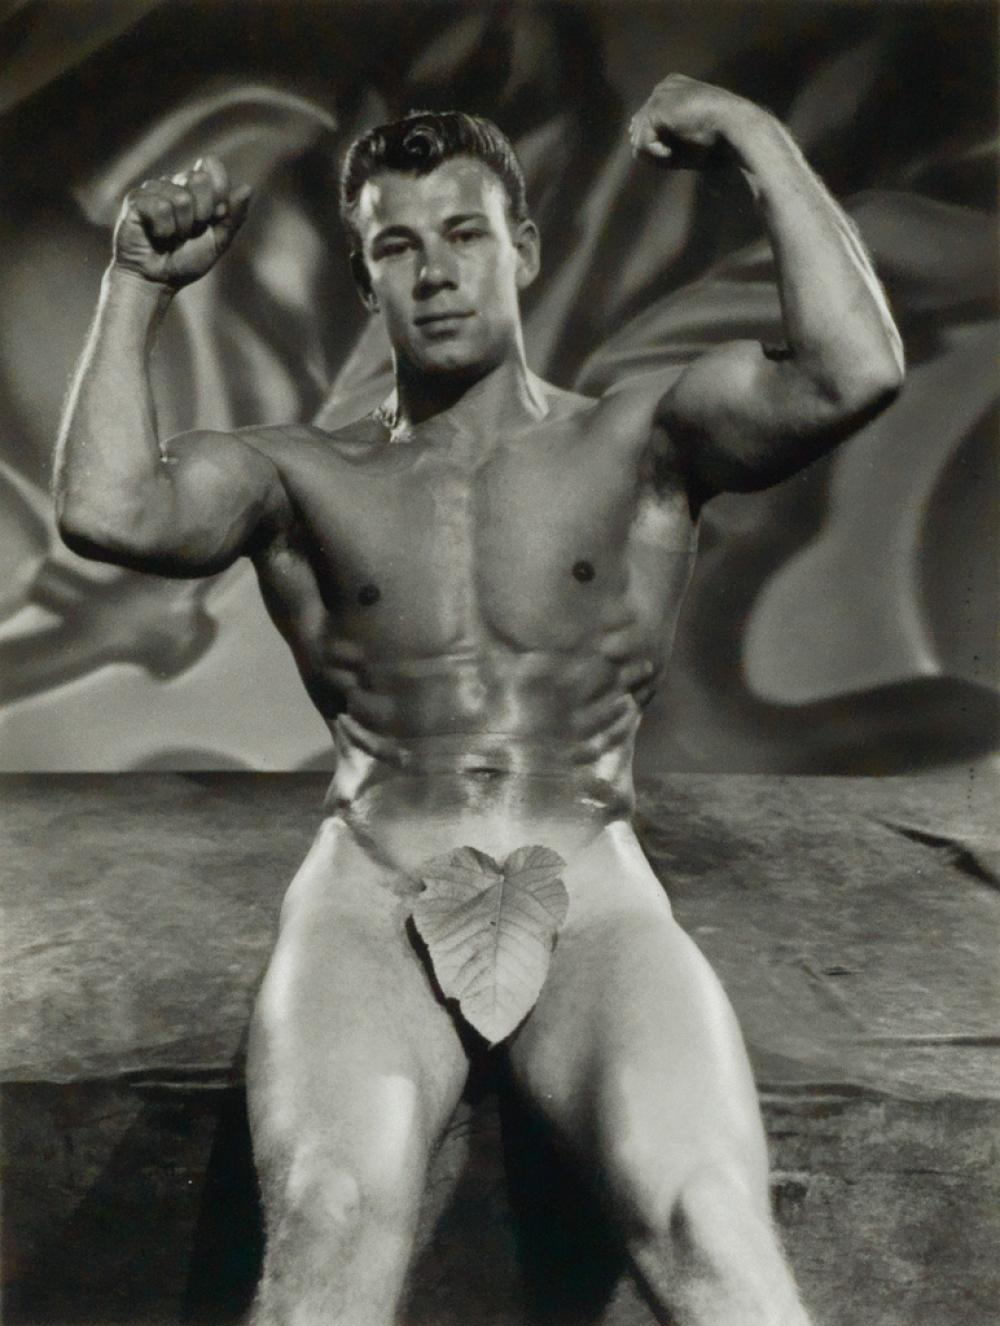 (WESTERN PHOTOGRAPHY GUILD) A group of approximately 90 superb male physique photographs.